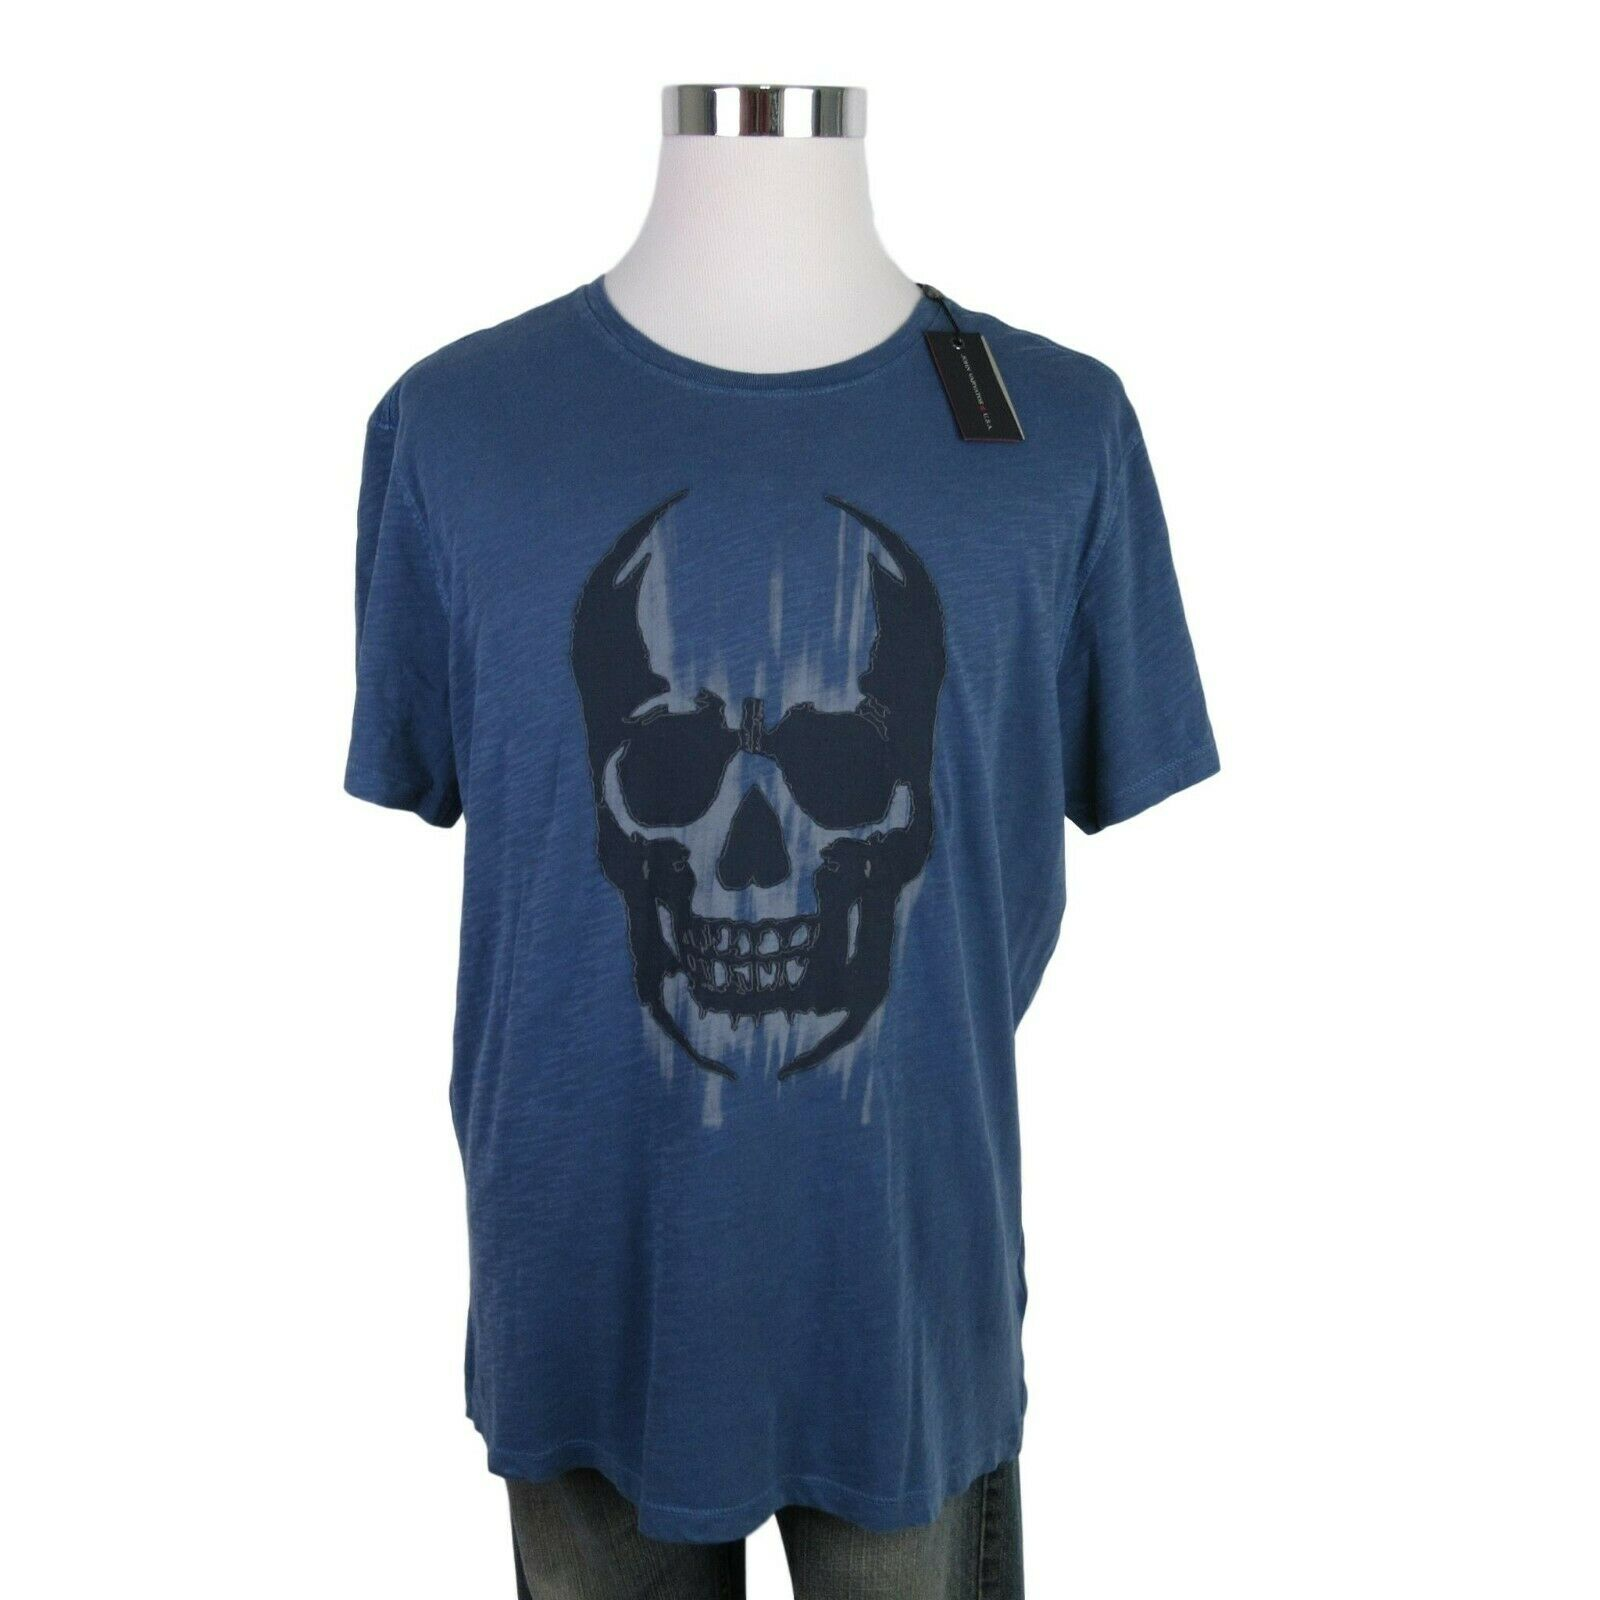 6e26f242 John Varvatos Star USA Skull Graphic Blue Cotton T-Shirt Size XL $88